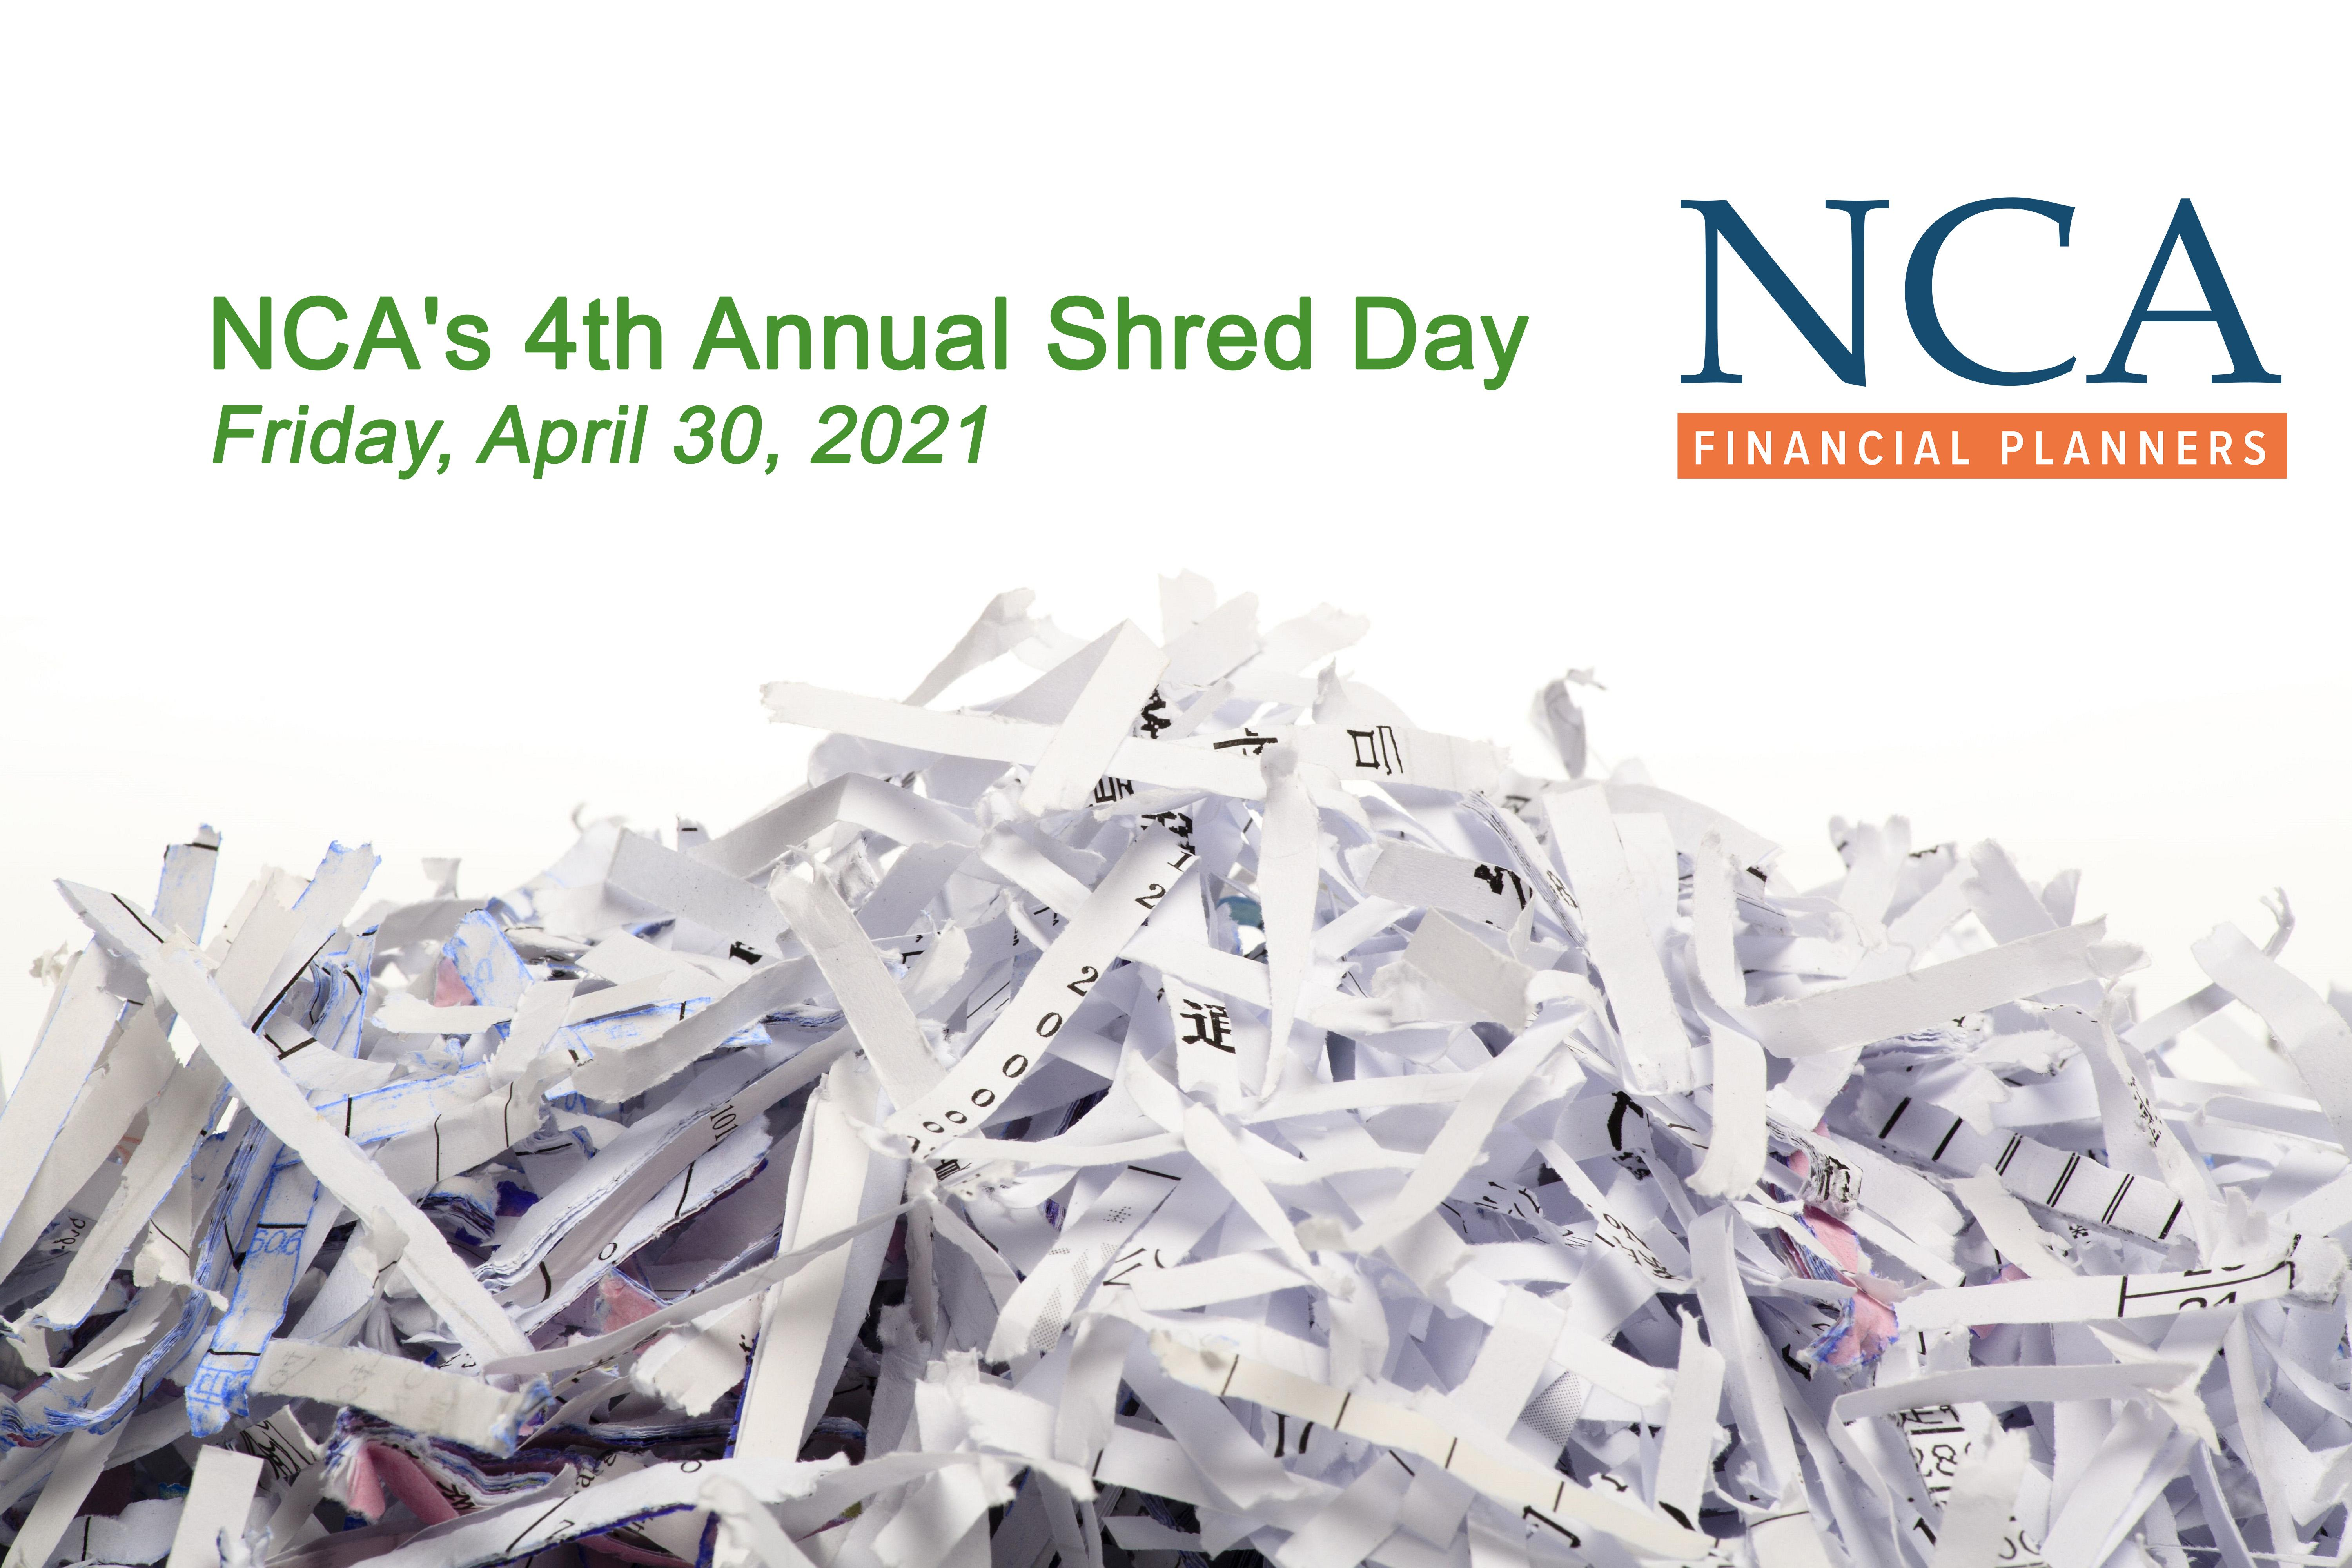 NCA's 4th Annual Shred Day Event Thumbnail